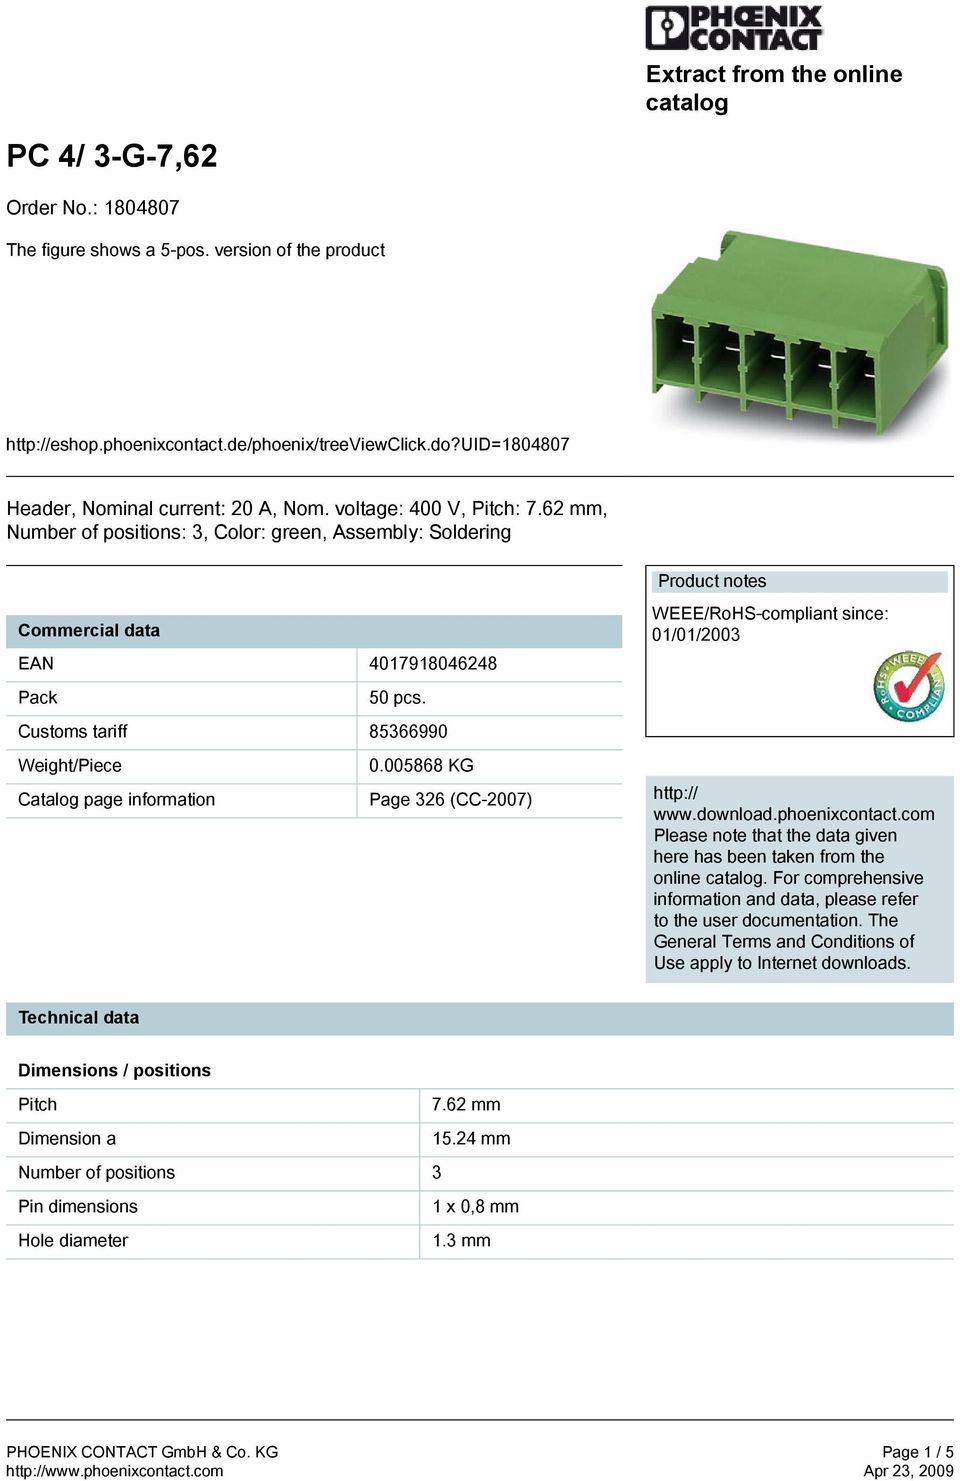 005868 KG Catalog page information Page 326 (CC-2007) Product notes WEEE/RoHS-compliant since: 01/01/2003 http:// www.download.phoenixcontact.